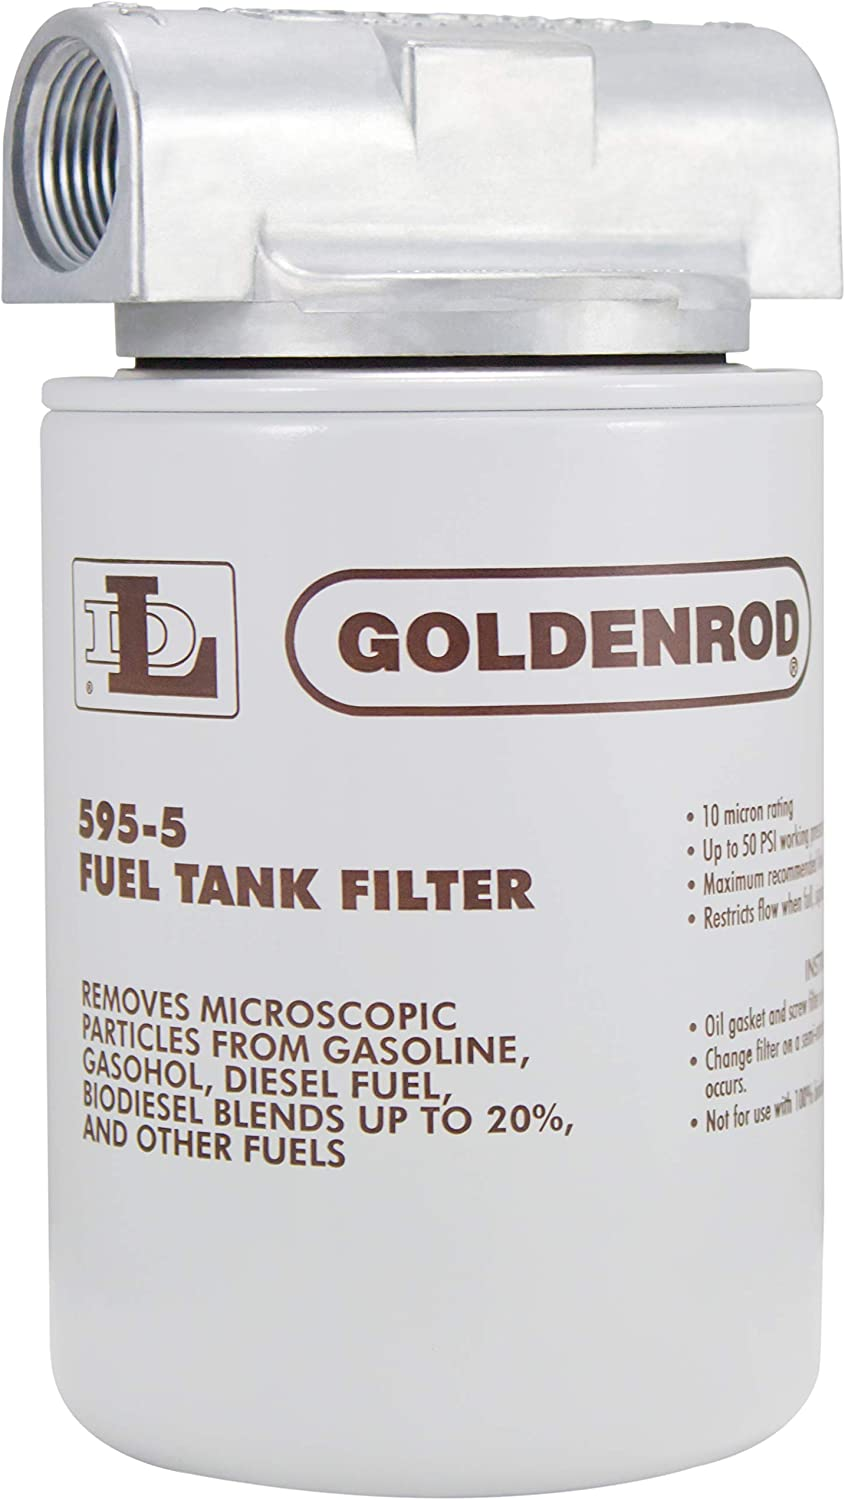 Bowl Fuel Tank Filter with 3//4 NPT Top Cap 56591 GOLDENROD 496-3//4 WATER-BLOCK FILTER